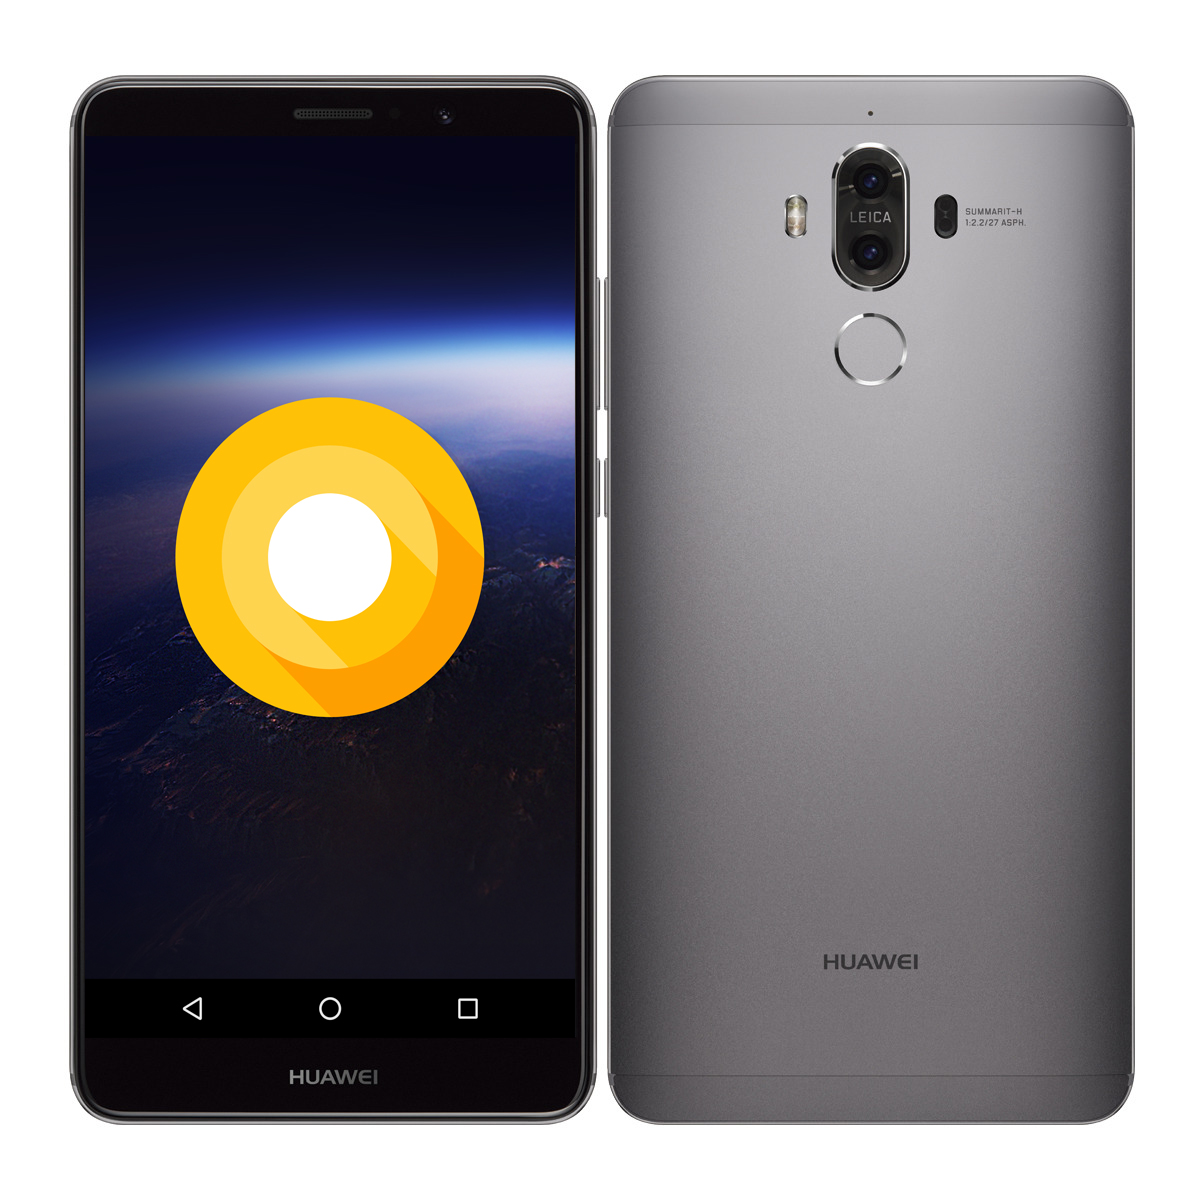 Pictures Of Huawei Mate 9 Running Android O Spotted Online